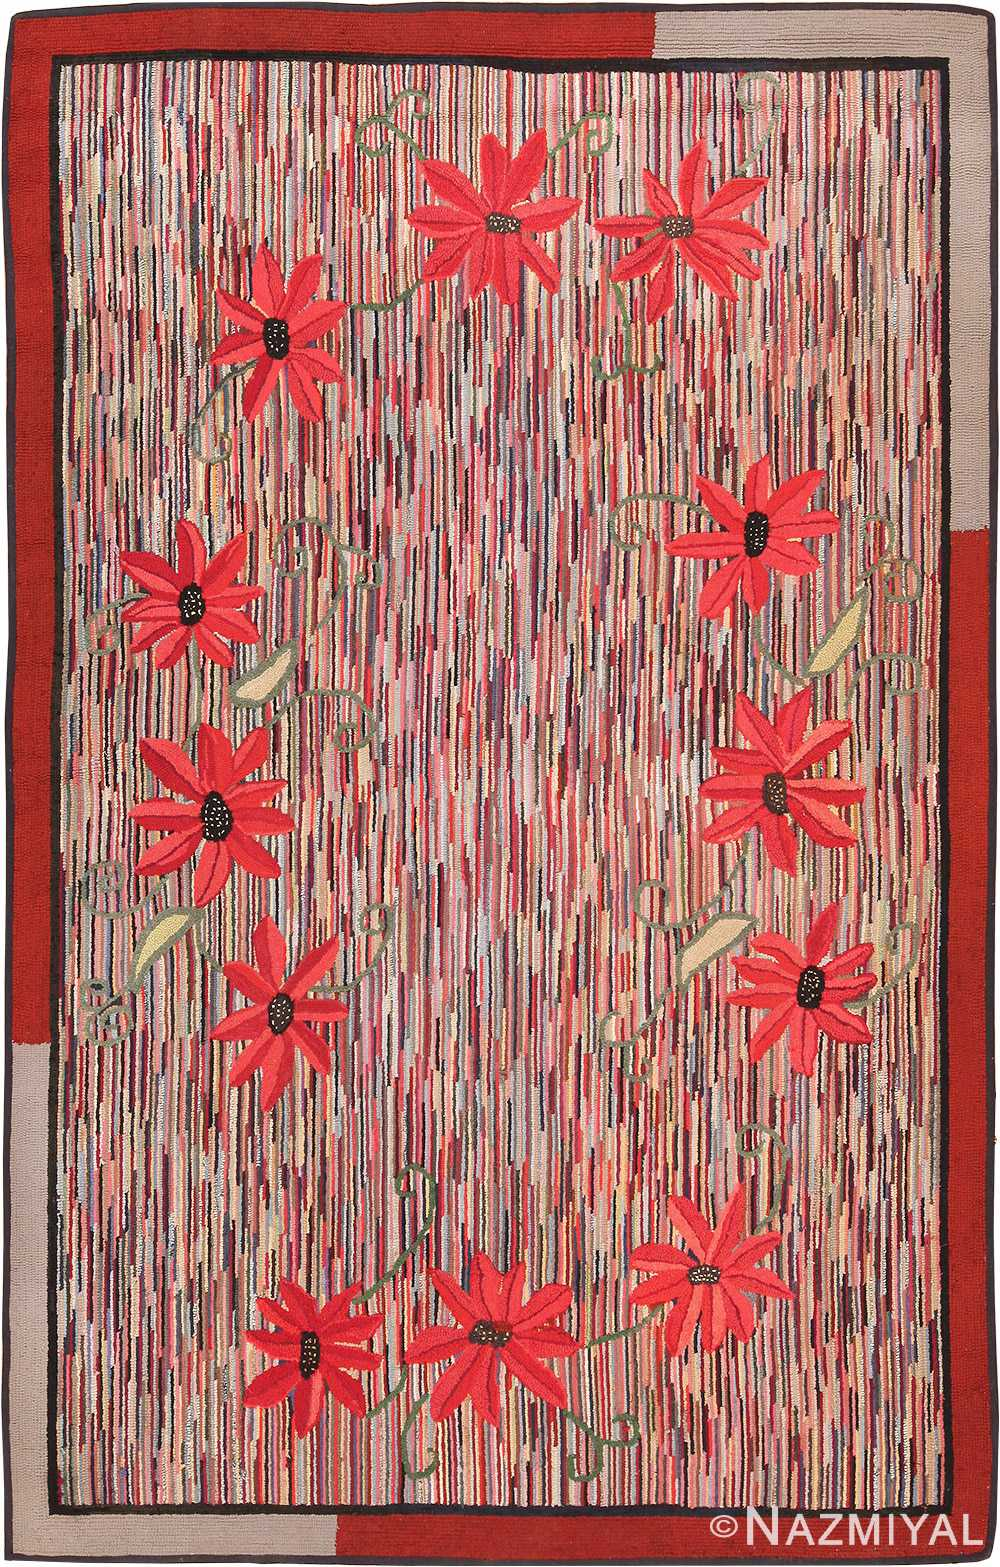 Picture of a Floral Antique American Hooked Rug #70055 from Nazmiyal Antique Rugs in NYC